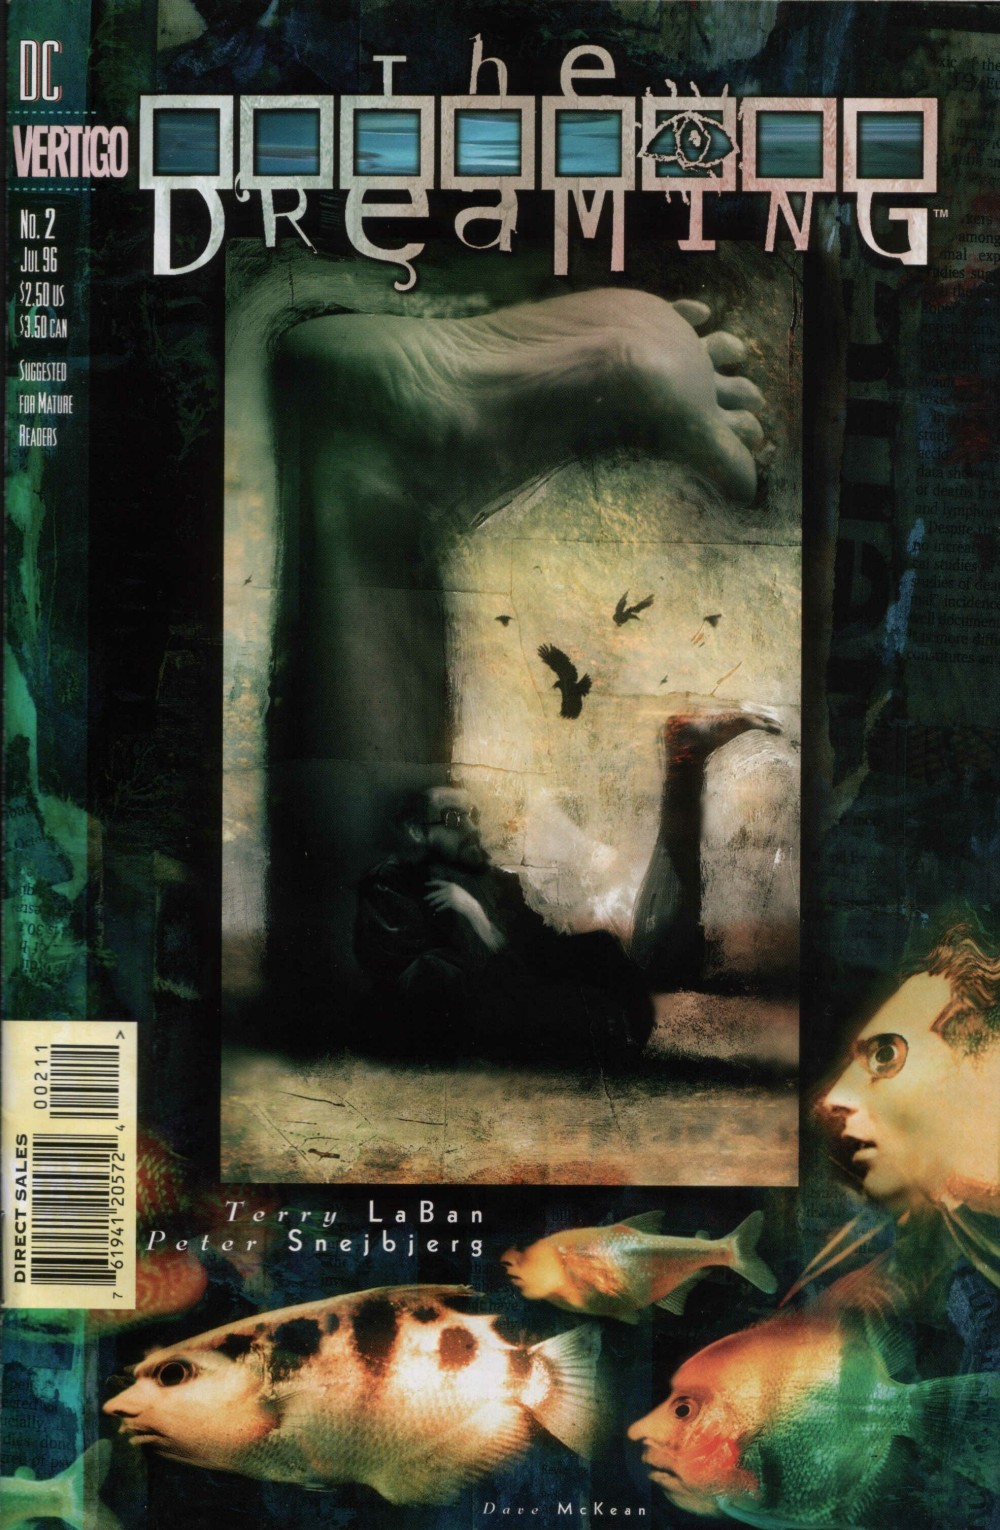 Dreaming, The [DC Vertigo] V1 0002.jpg